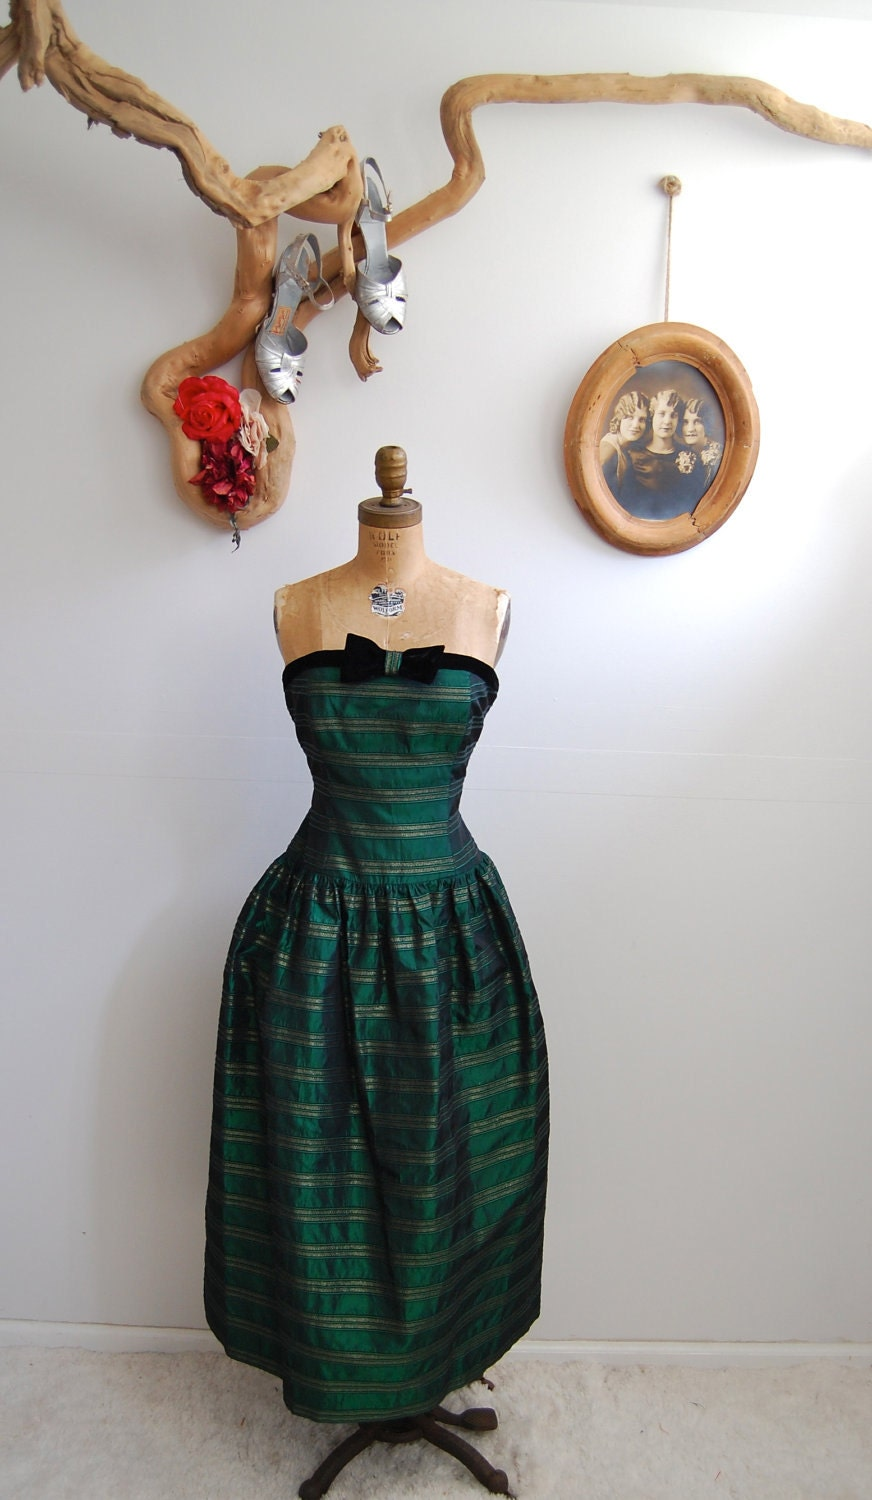 Vintage Strapless Cocktail Dress - 80s does 50s Holiday Dress - The Anna